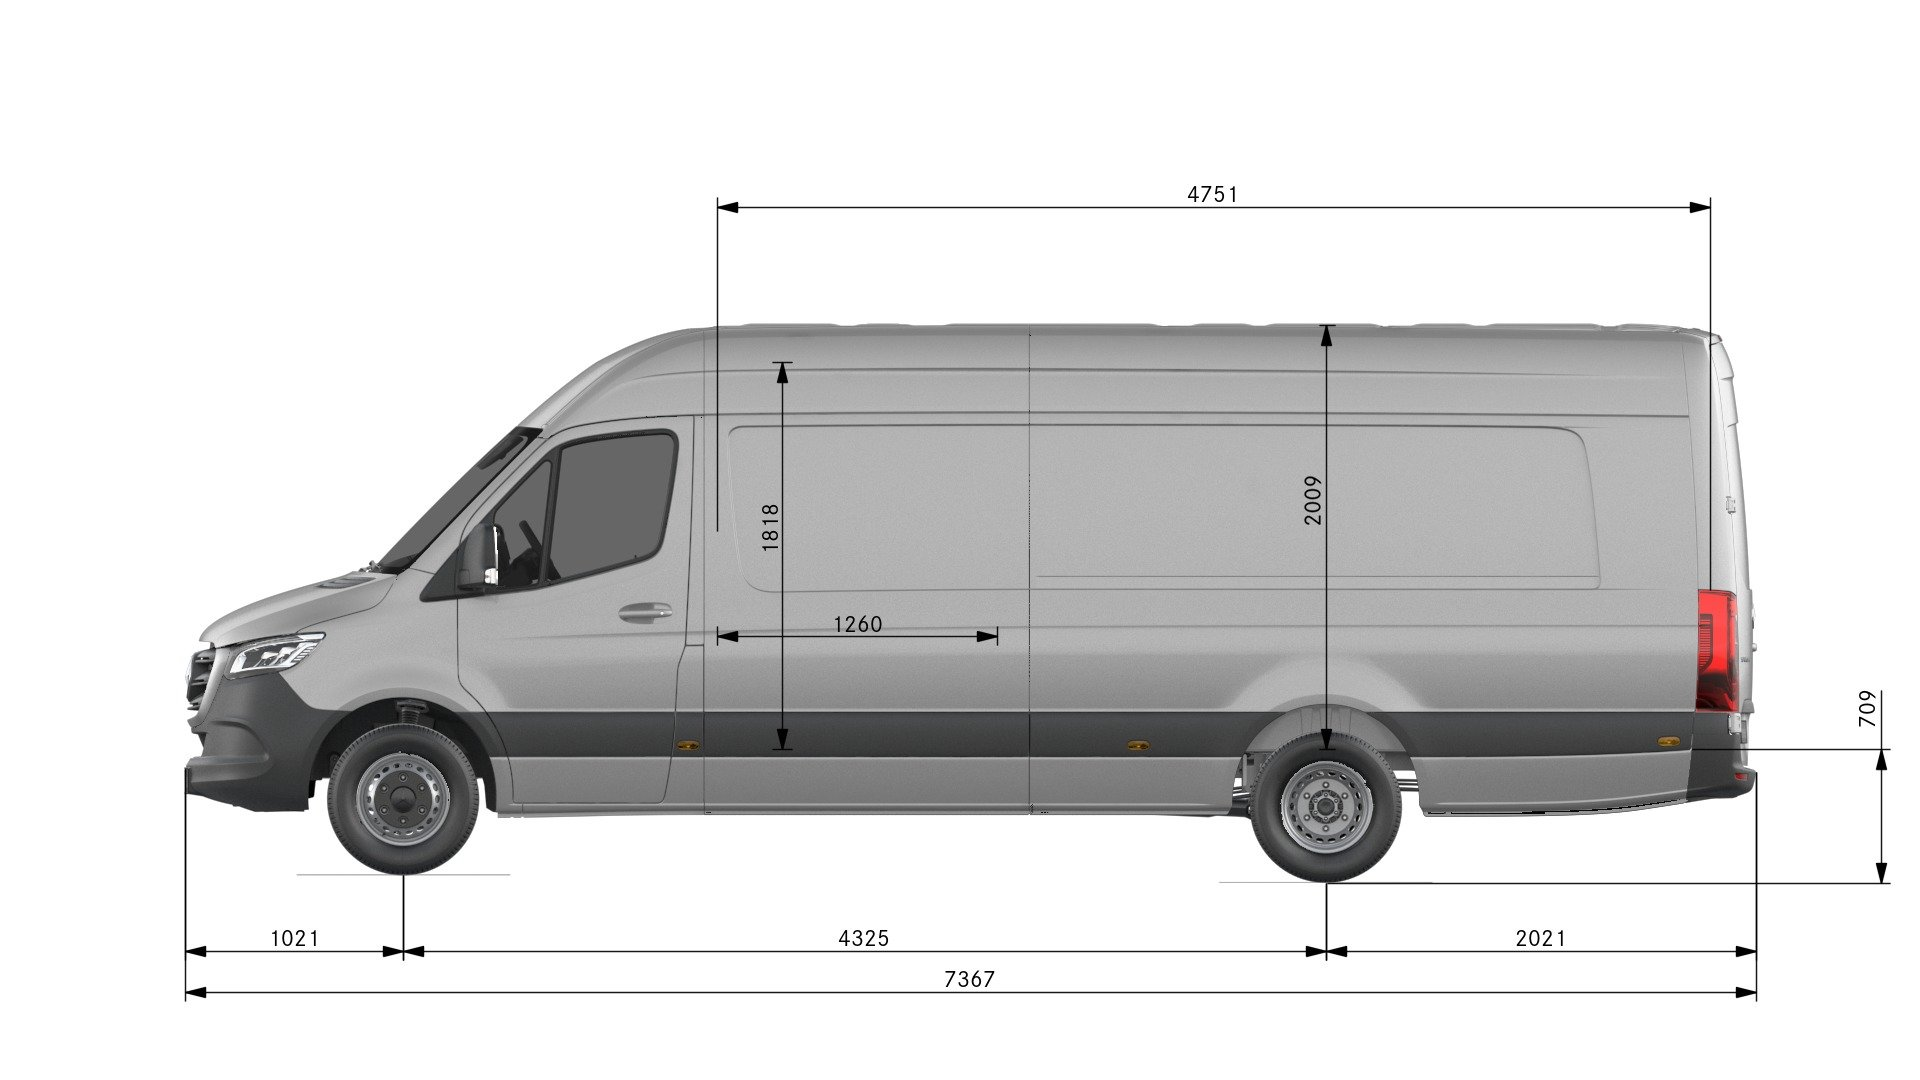 Van drawings-Side view